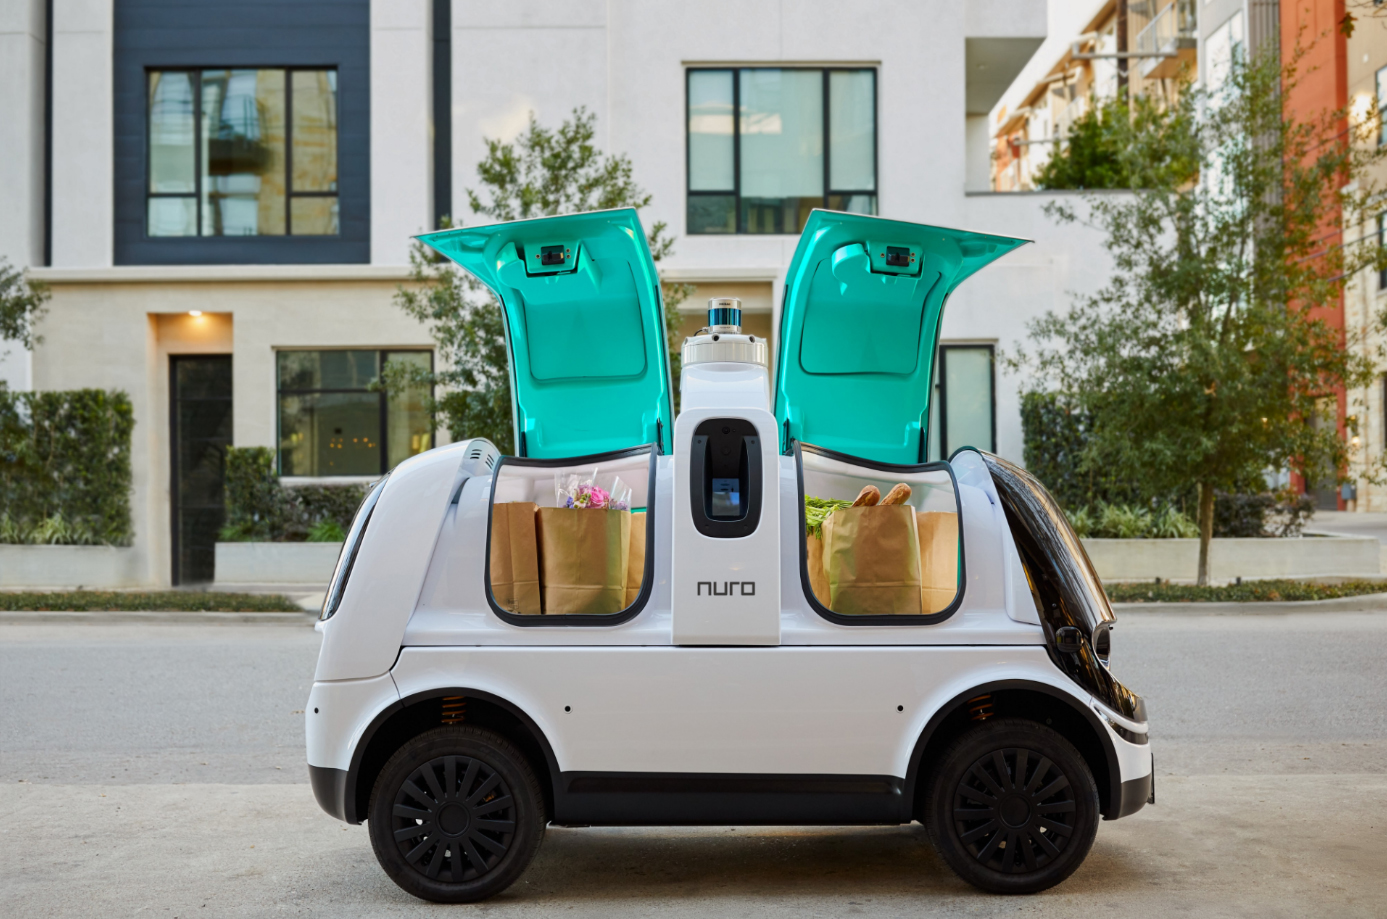 U.S. authorities in record time approve testing of Nuro robot couriers